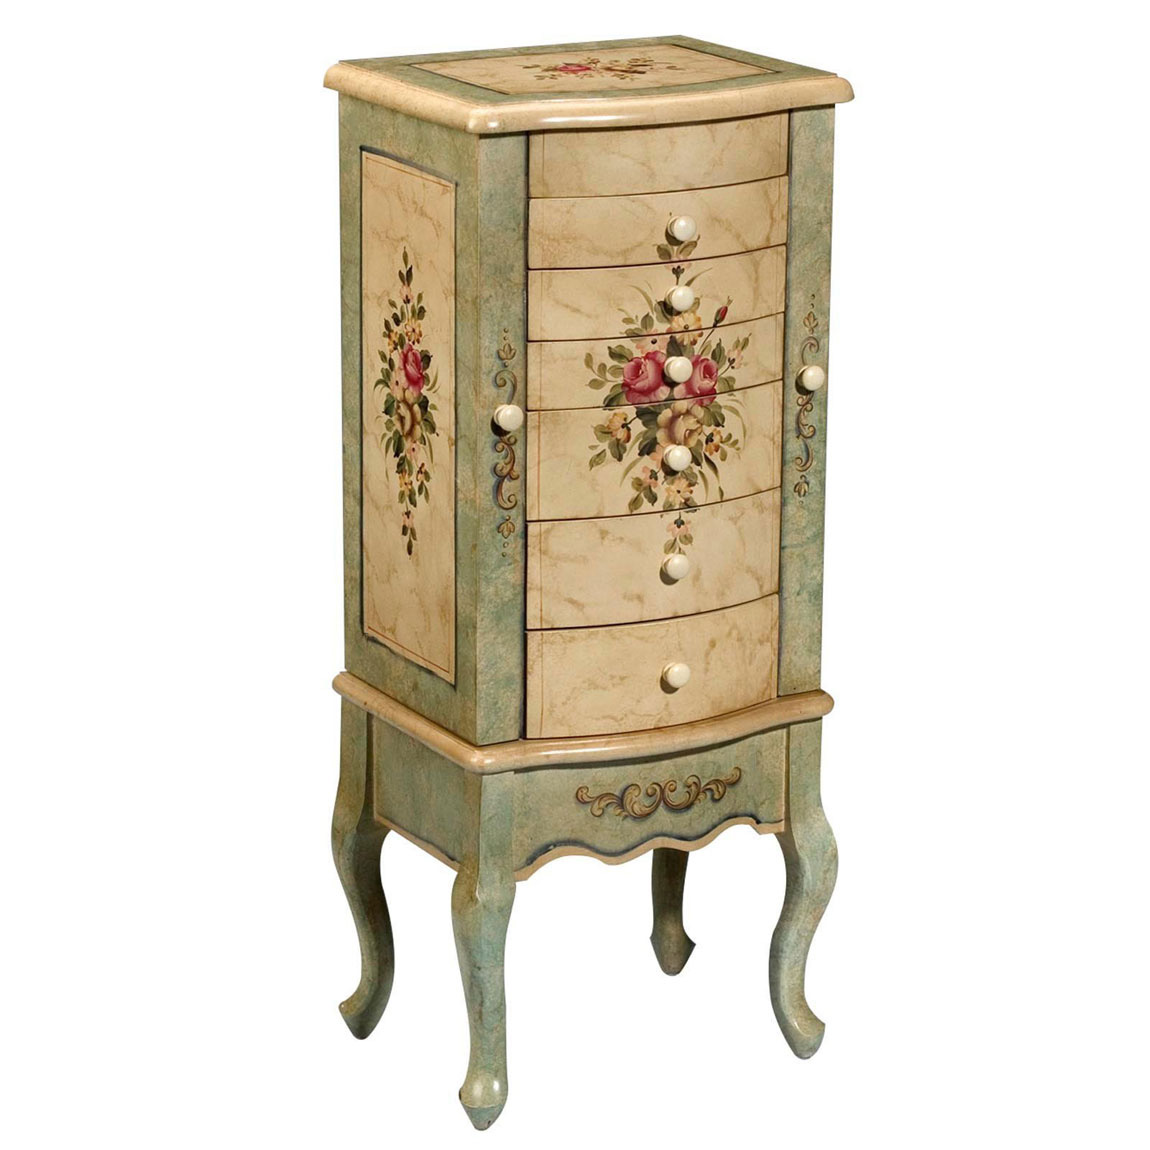 Cute Vintage Floral Theme Standing Jewelry Armoire